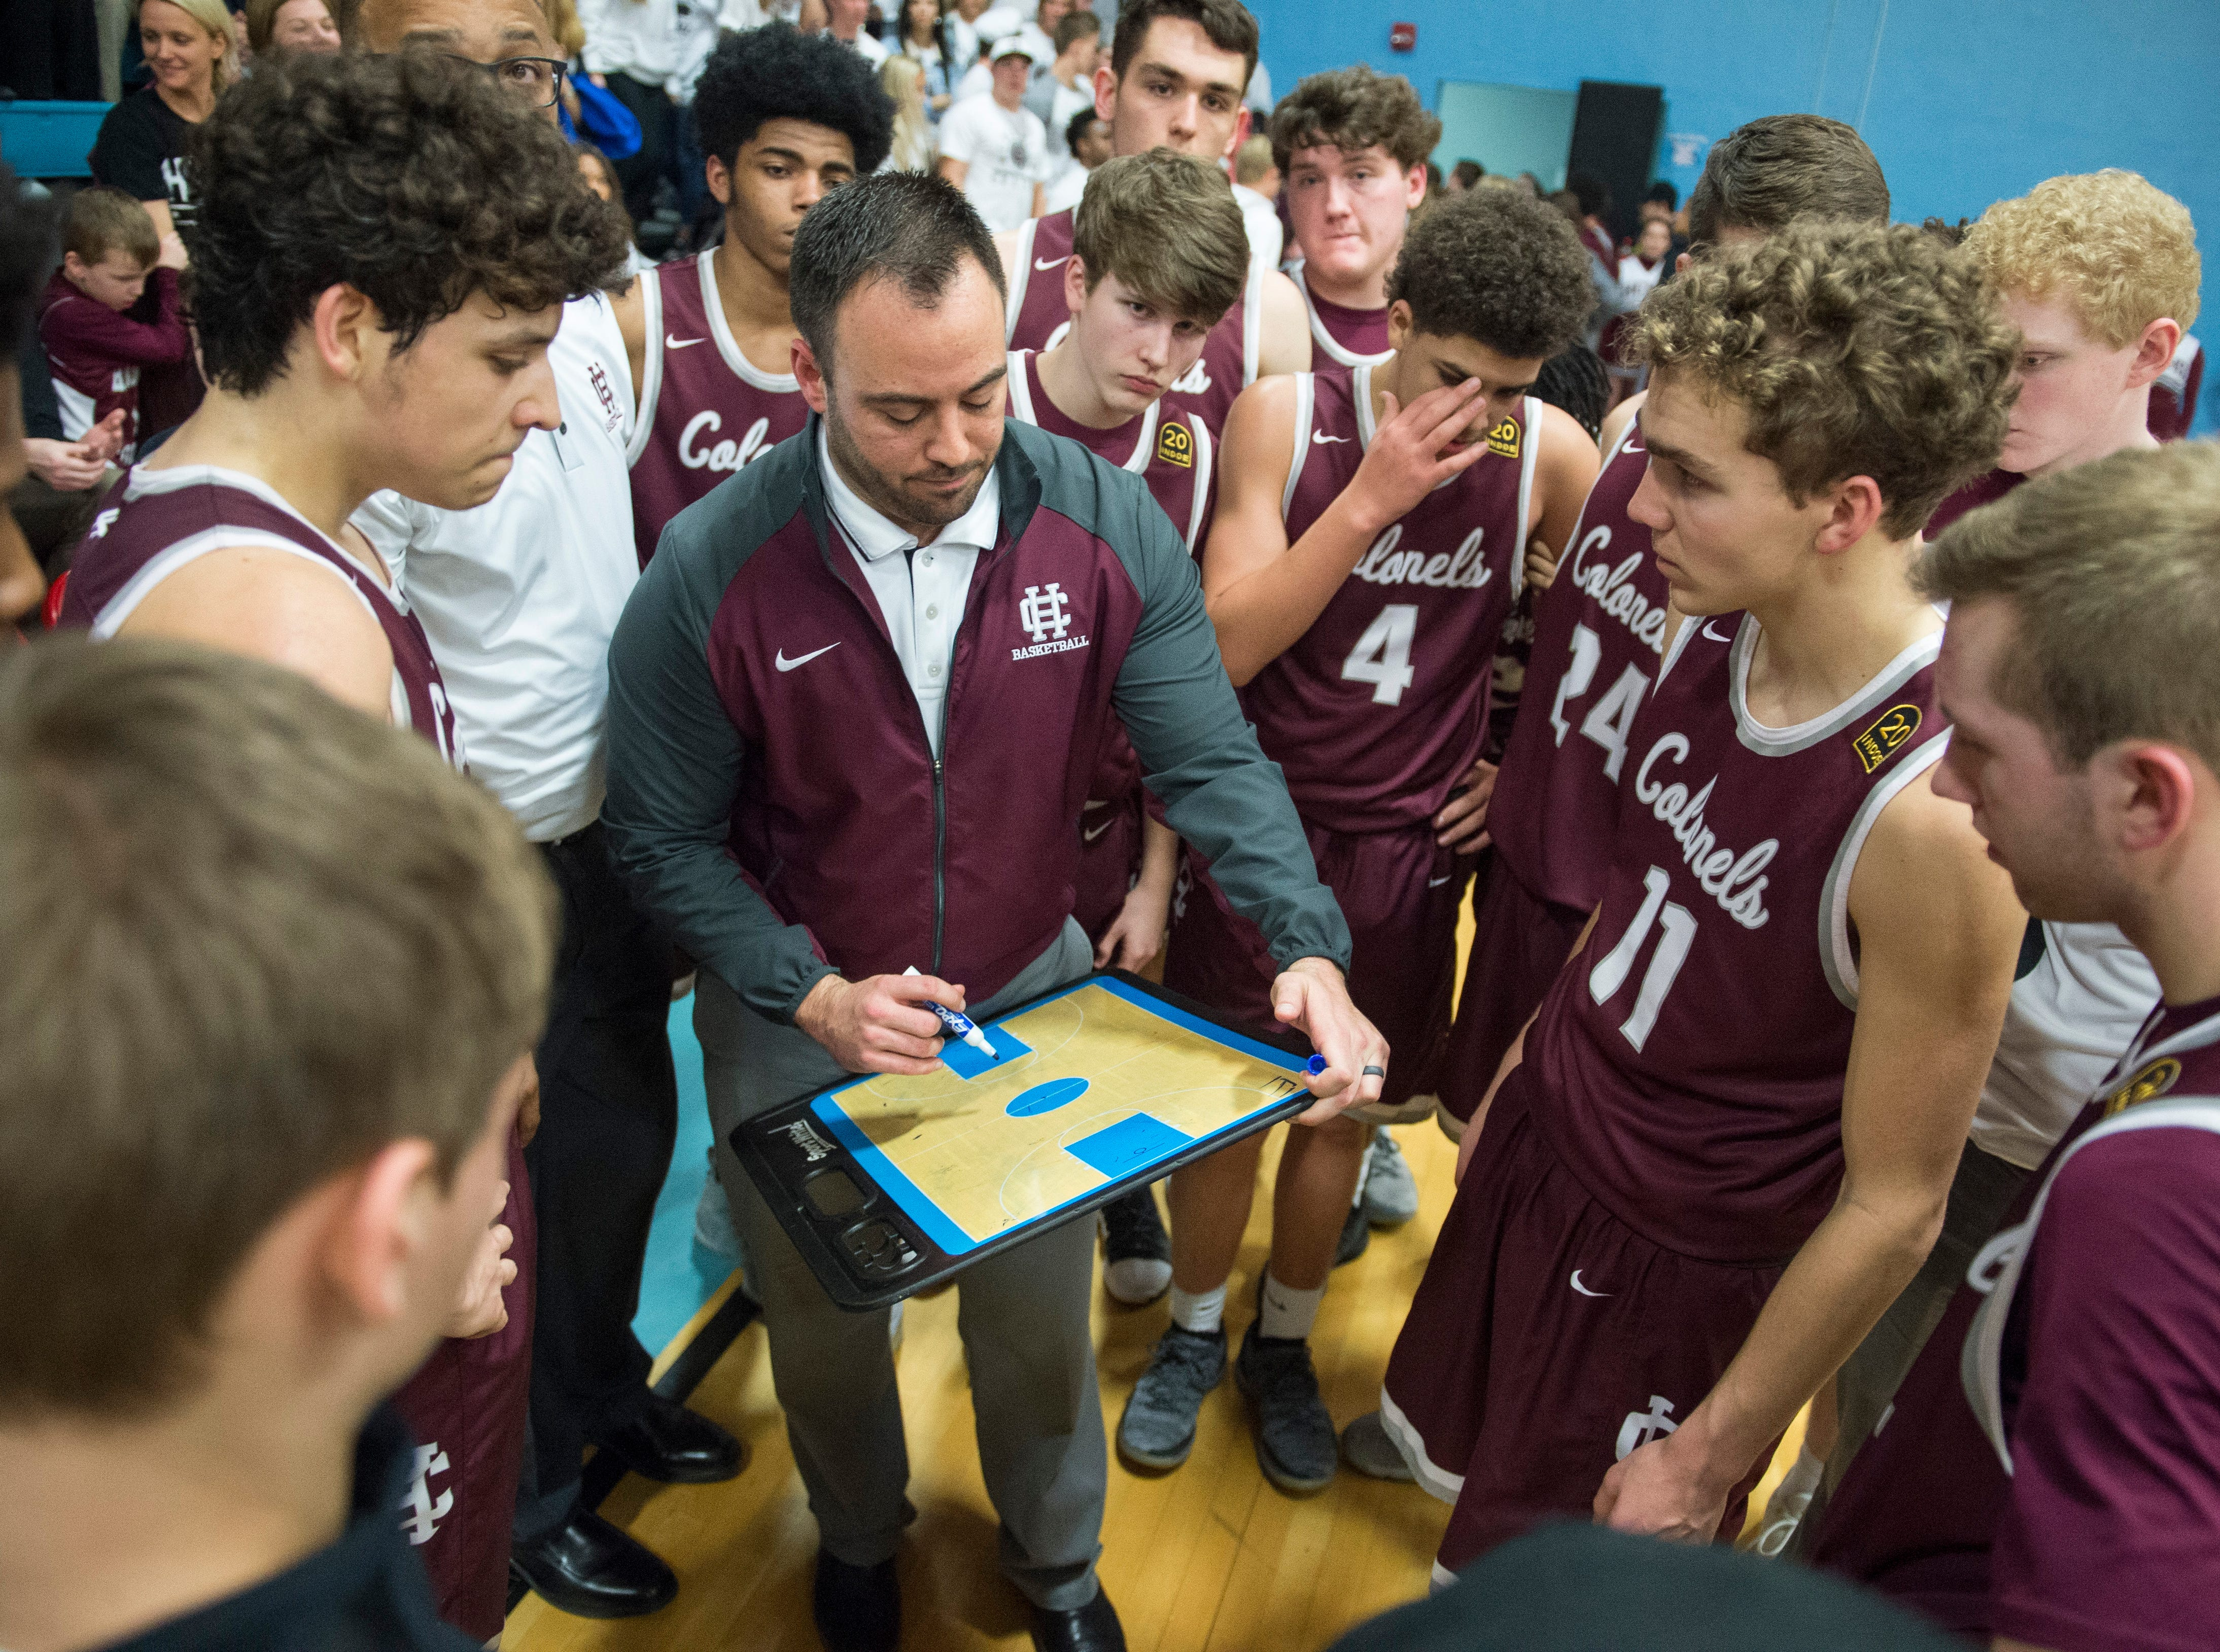 Henderson Head Coach Tyler Smithart gives direction during a timeout of the 2019 Sixth District championship game against the Union County Braves at Union County High School Thursday, Feb. 21, 2019.